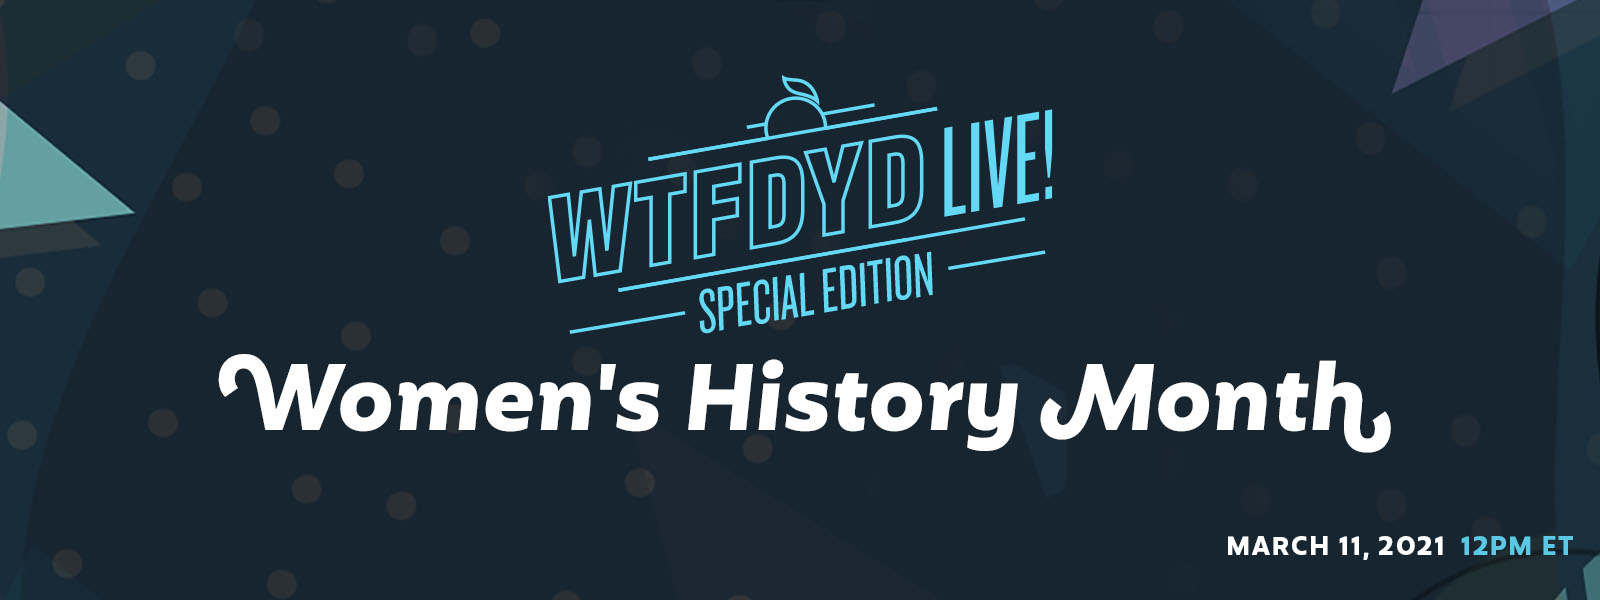 WTFDYD Live! – Women's History Month Edition